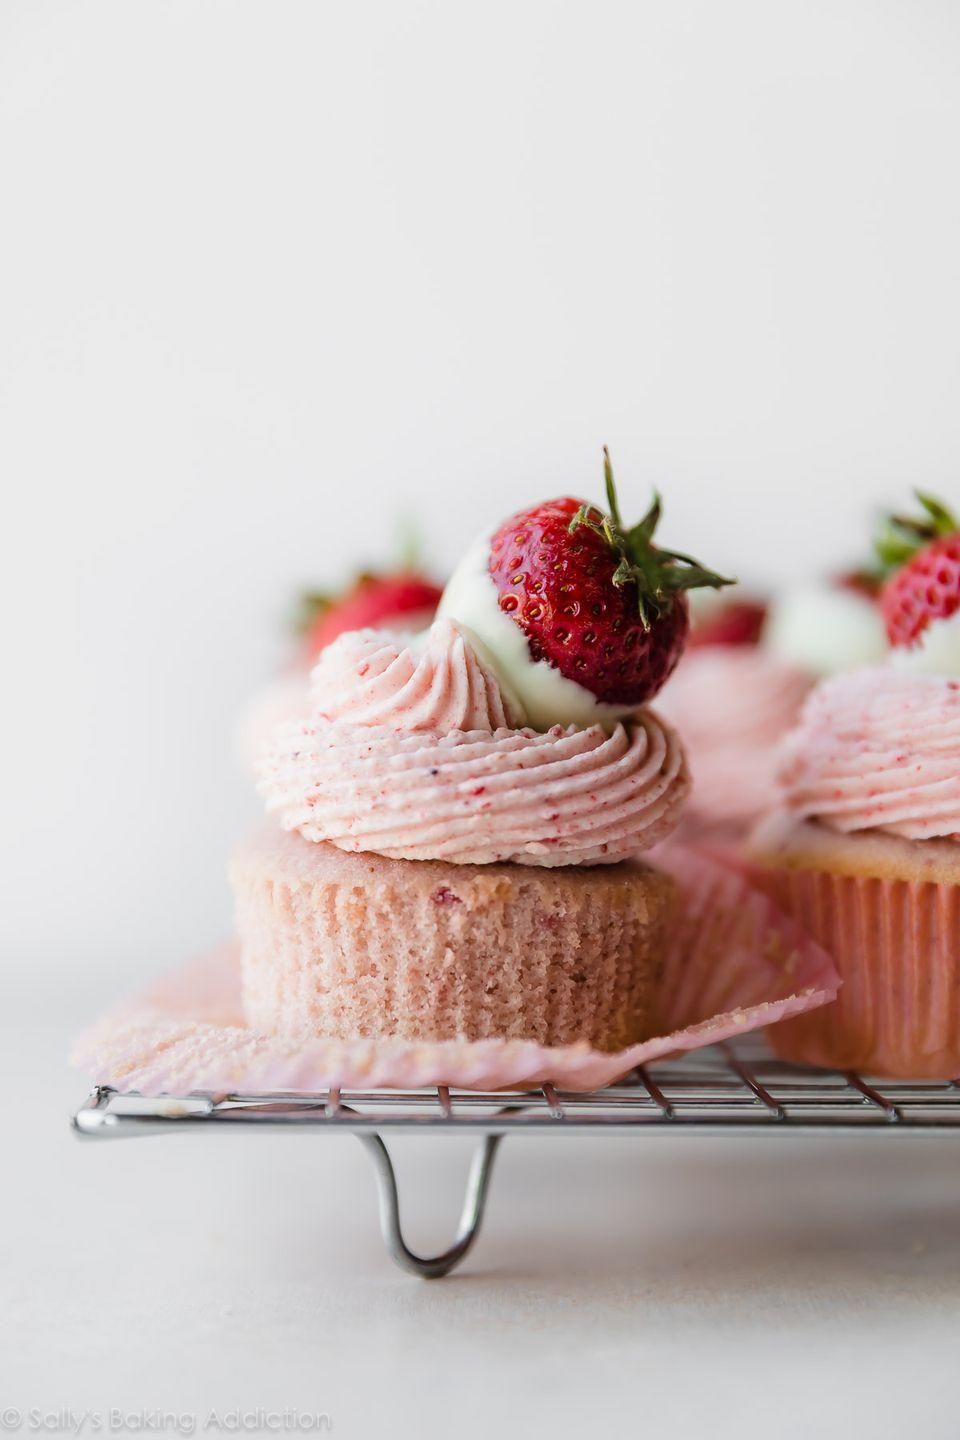 """<p>This recipe uses fresh strawberries in the cake and frosting. The chocolate-covered strawberry on top is so cute!</p><p><strong>Get the recipe at <a href=""""https://sallysbakingaddiction.com/white-chocolate-strawberry-cupcakes/"""" rel=""""nofollow noopener"""" target=""""_blank"""" data-ylk=""""slk:Sally's Baking Addiction"""" class=""""link rapid-noclick-resp"""">Sally's Baking Addiction</a>.</strong></p><p><strong><a class=""""link rapid-noclick-resp"""" href=""""https://go.redirectingat.com?id=74968X1596630&url=https%3A%2F%2Fwww.walmart.com%2Fbrowse%2Fhome%2Fbaking-pastry-tools%2Fthe-pioneer-woman%2F4044_623679_8455465_9246304%2FYnJhbmQ6VGhlIFBpb25lZXIgV29tYW4ie&sref=https%3A%2F%2Fwww.thepioneerwoman.com%2Ffood-cooking%2Fmeals-menus%2Fg35139389%2Fvalentines-day-cupcake-ideas%2F"""" rel=""""nofollow noopener"""" target=""""_blank"""" data-ylk=""""slk:SHOP BAKING TOOLS"""">SHOP BAKING TOOLS</a><br></strong></p>"""